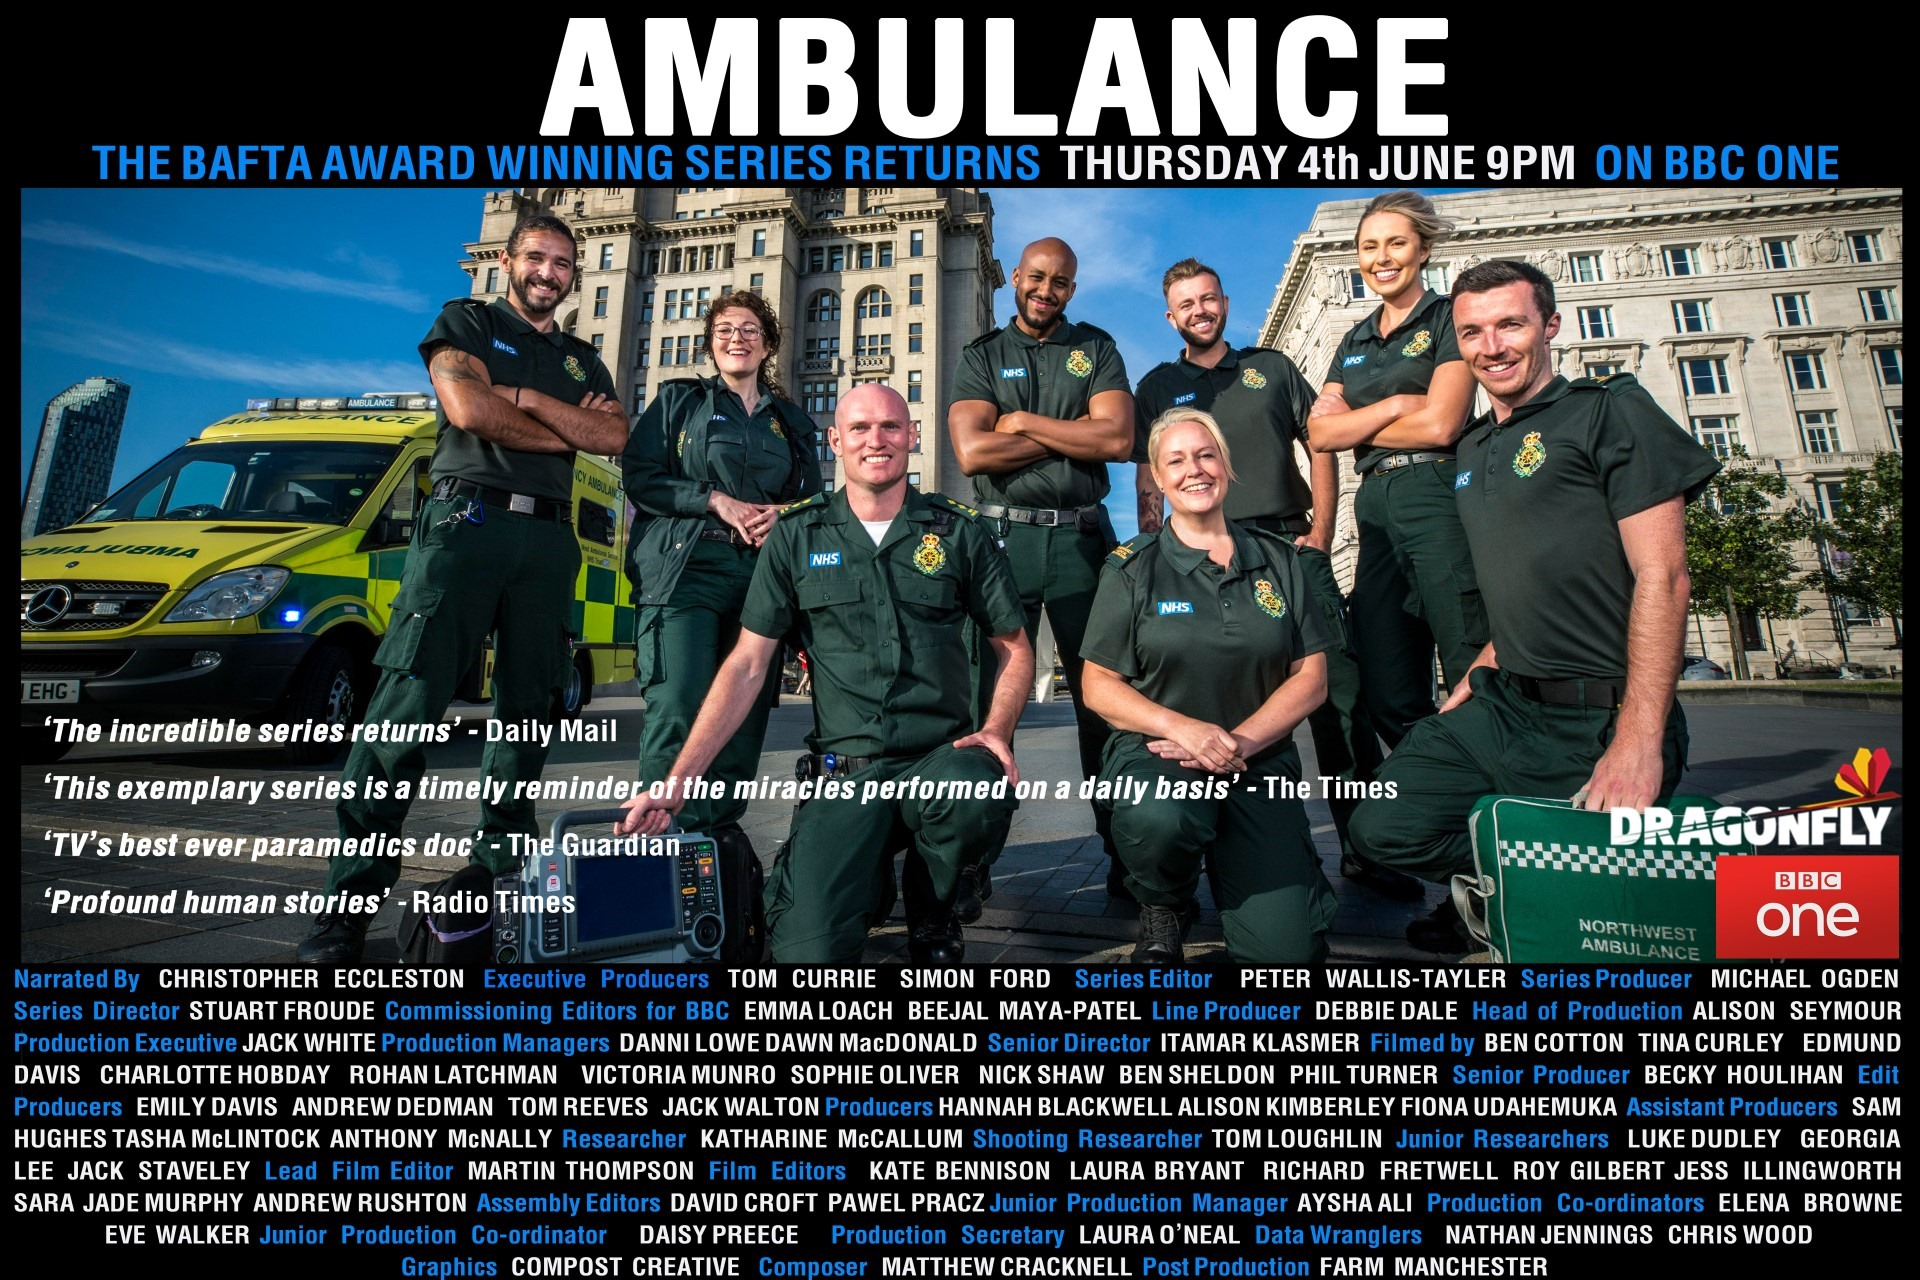 Ambulance - Series 5 / Liverpool. BBC1 - 59mins